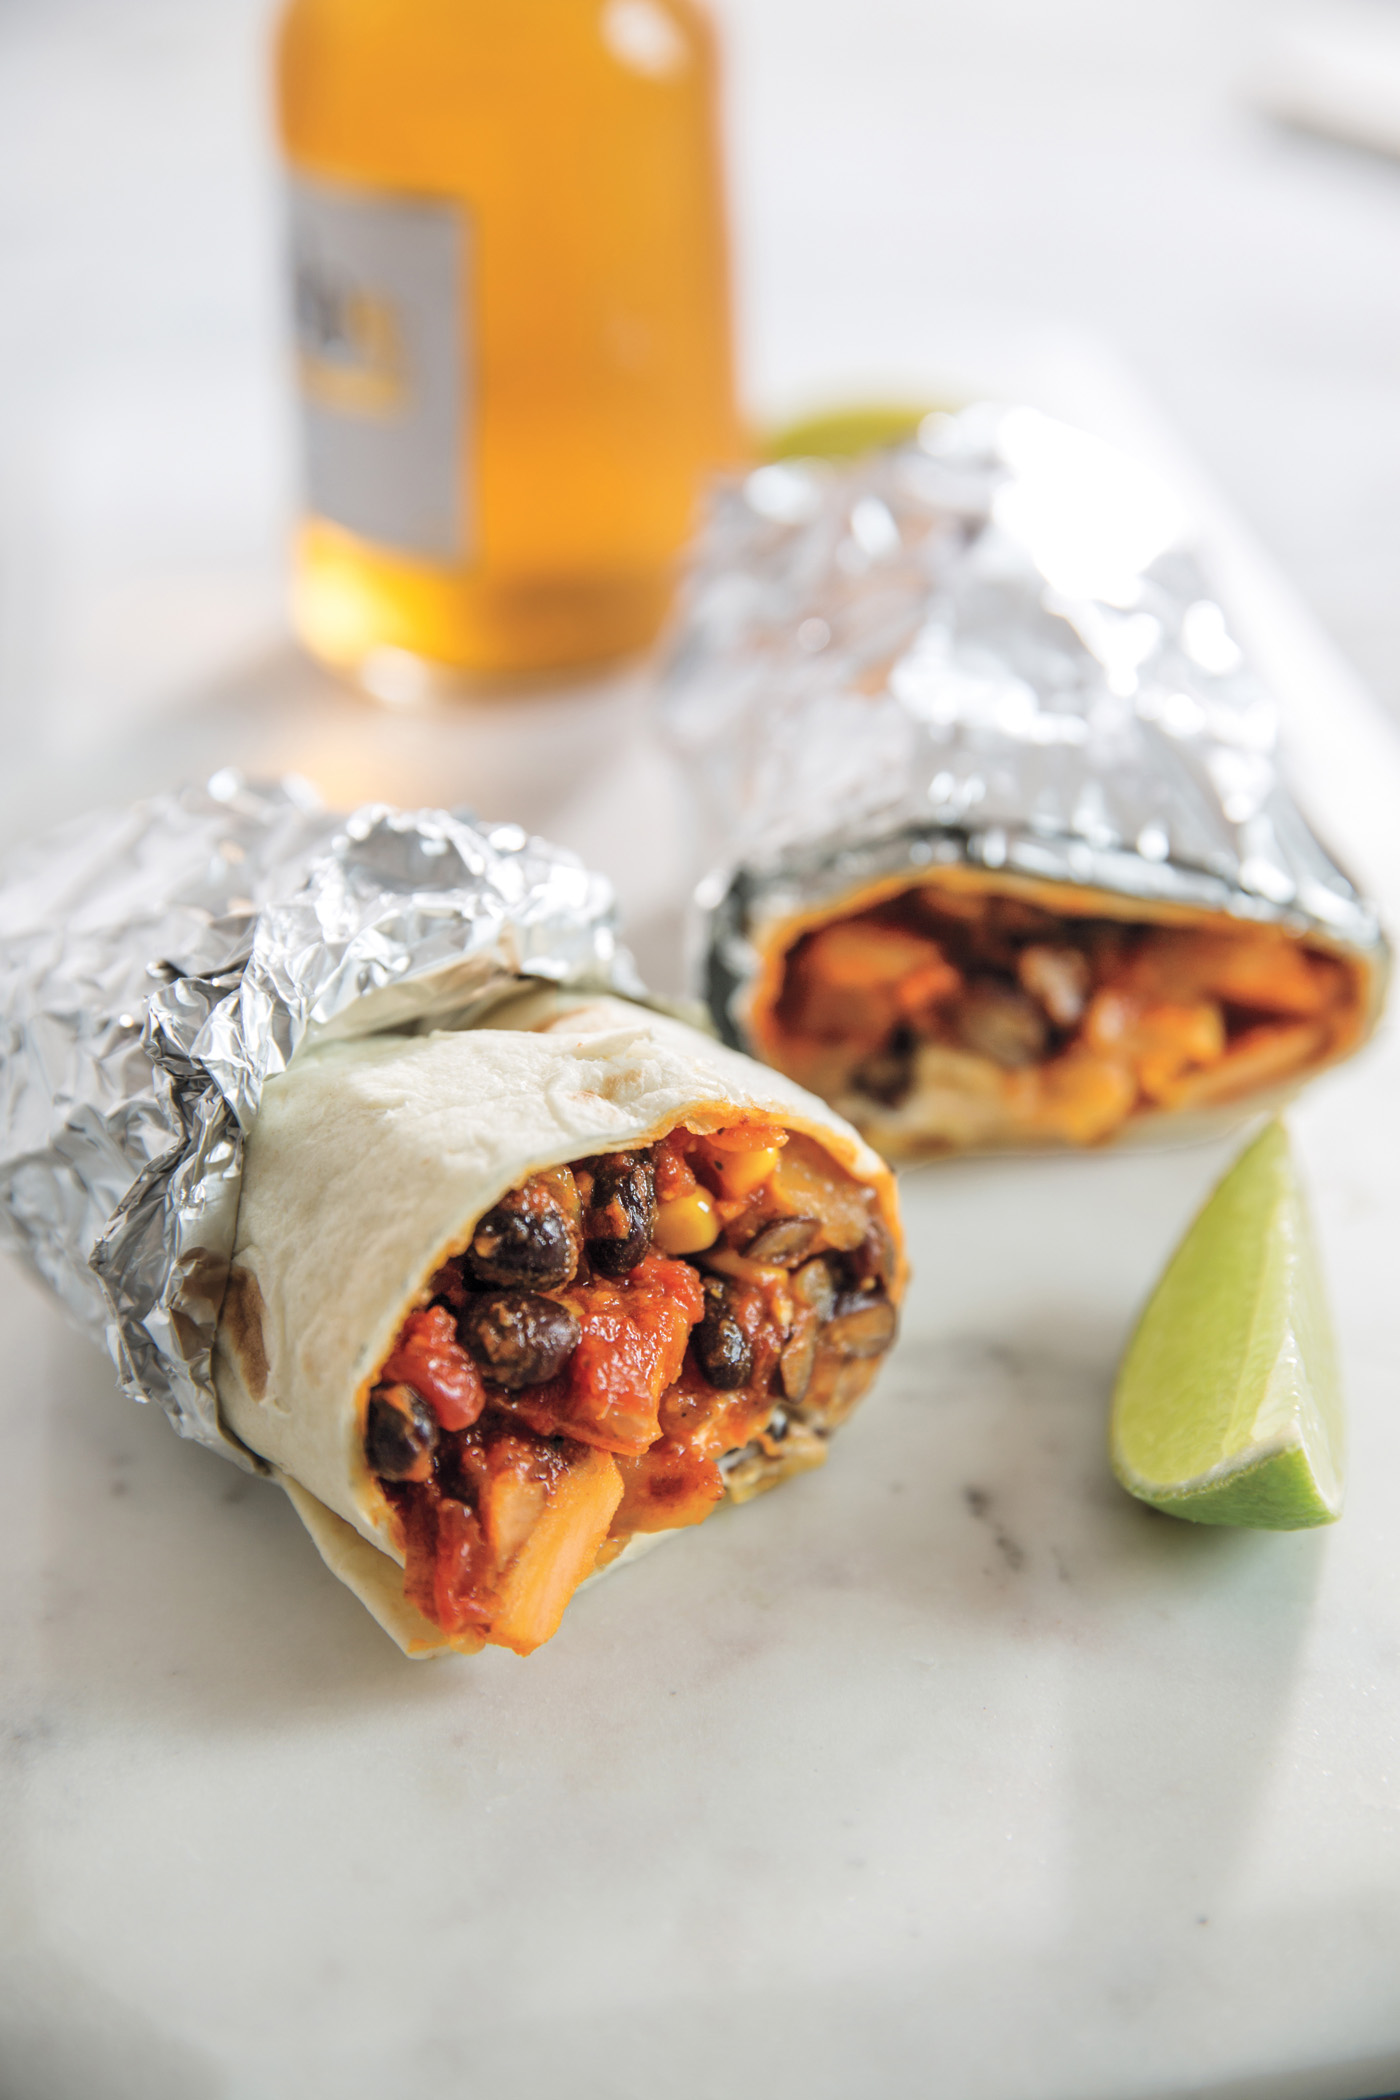 Kitchen Sink Burritos recipe from The Dinner Plan cookbook by Kathy Brennan and Caroline Campion: Not just an easy meal, but one that can be staggered for when everyone's coming home at a different time. A smart family dinner lifesaver! | Cool Mom Eats